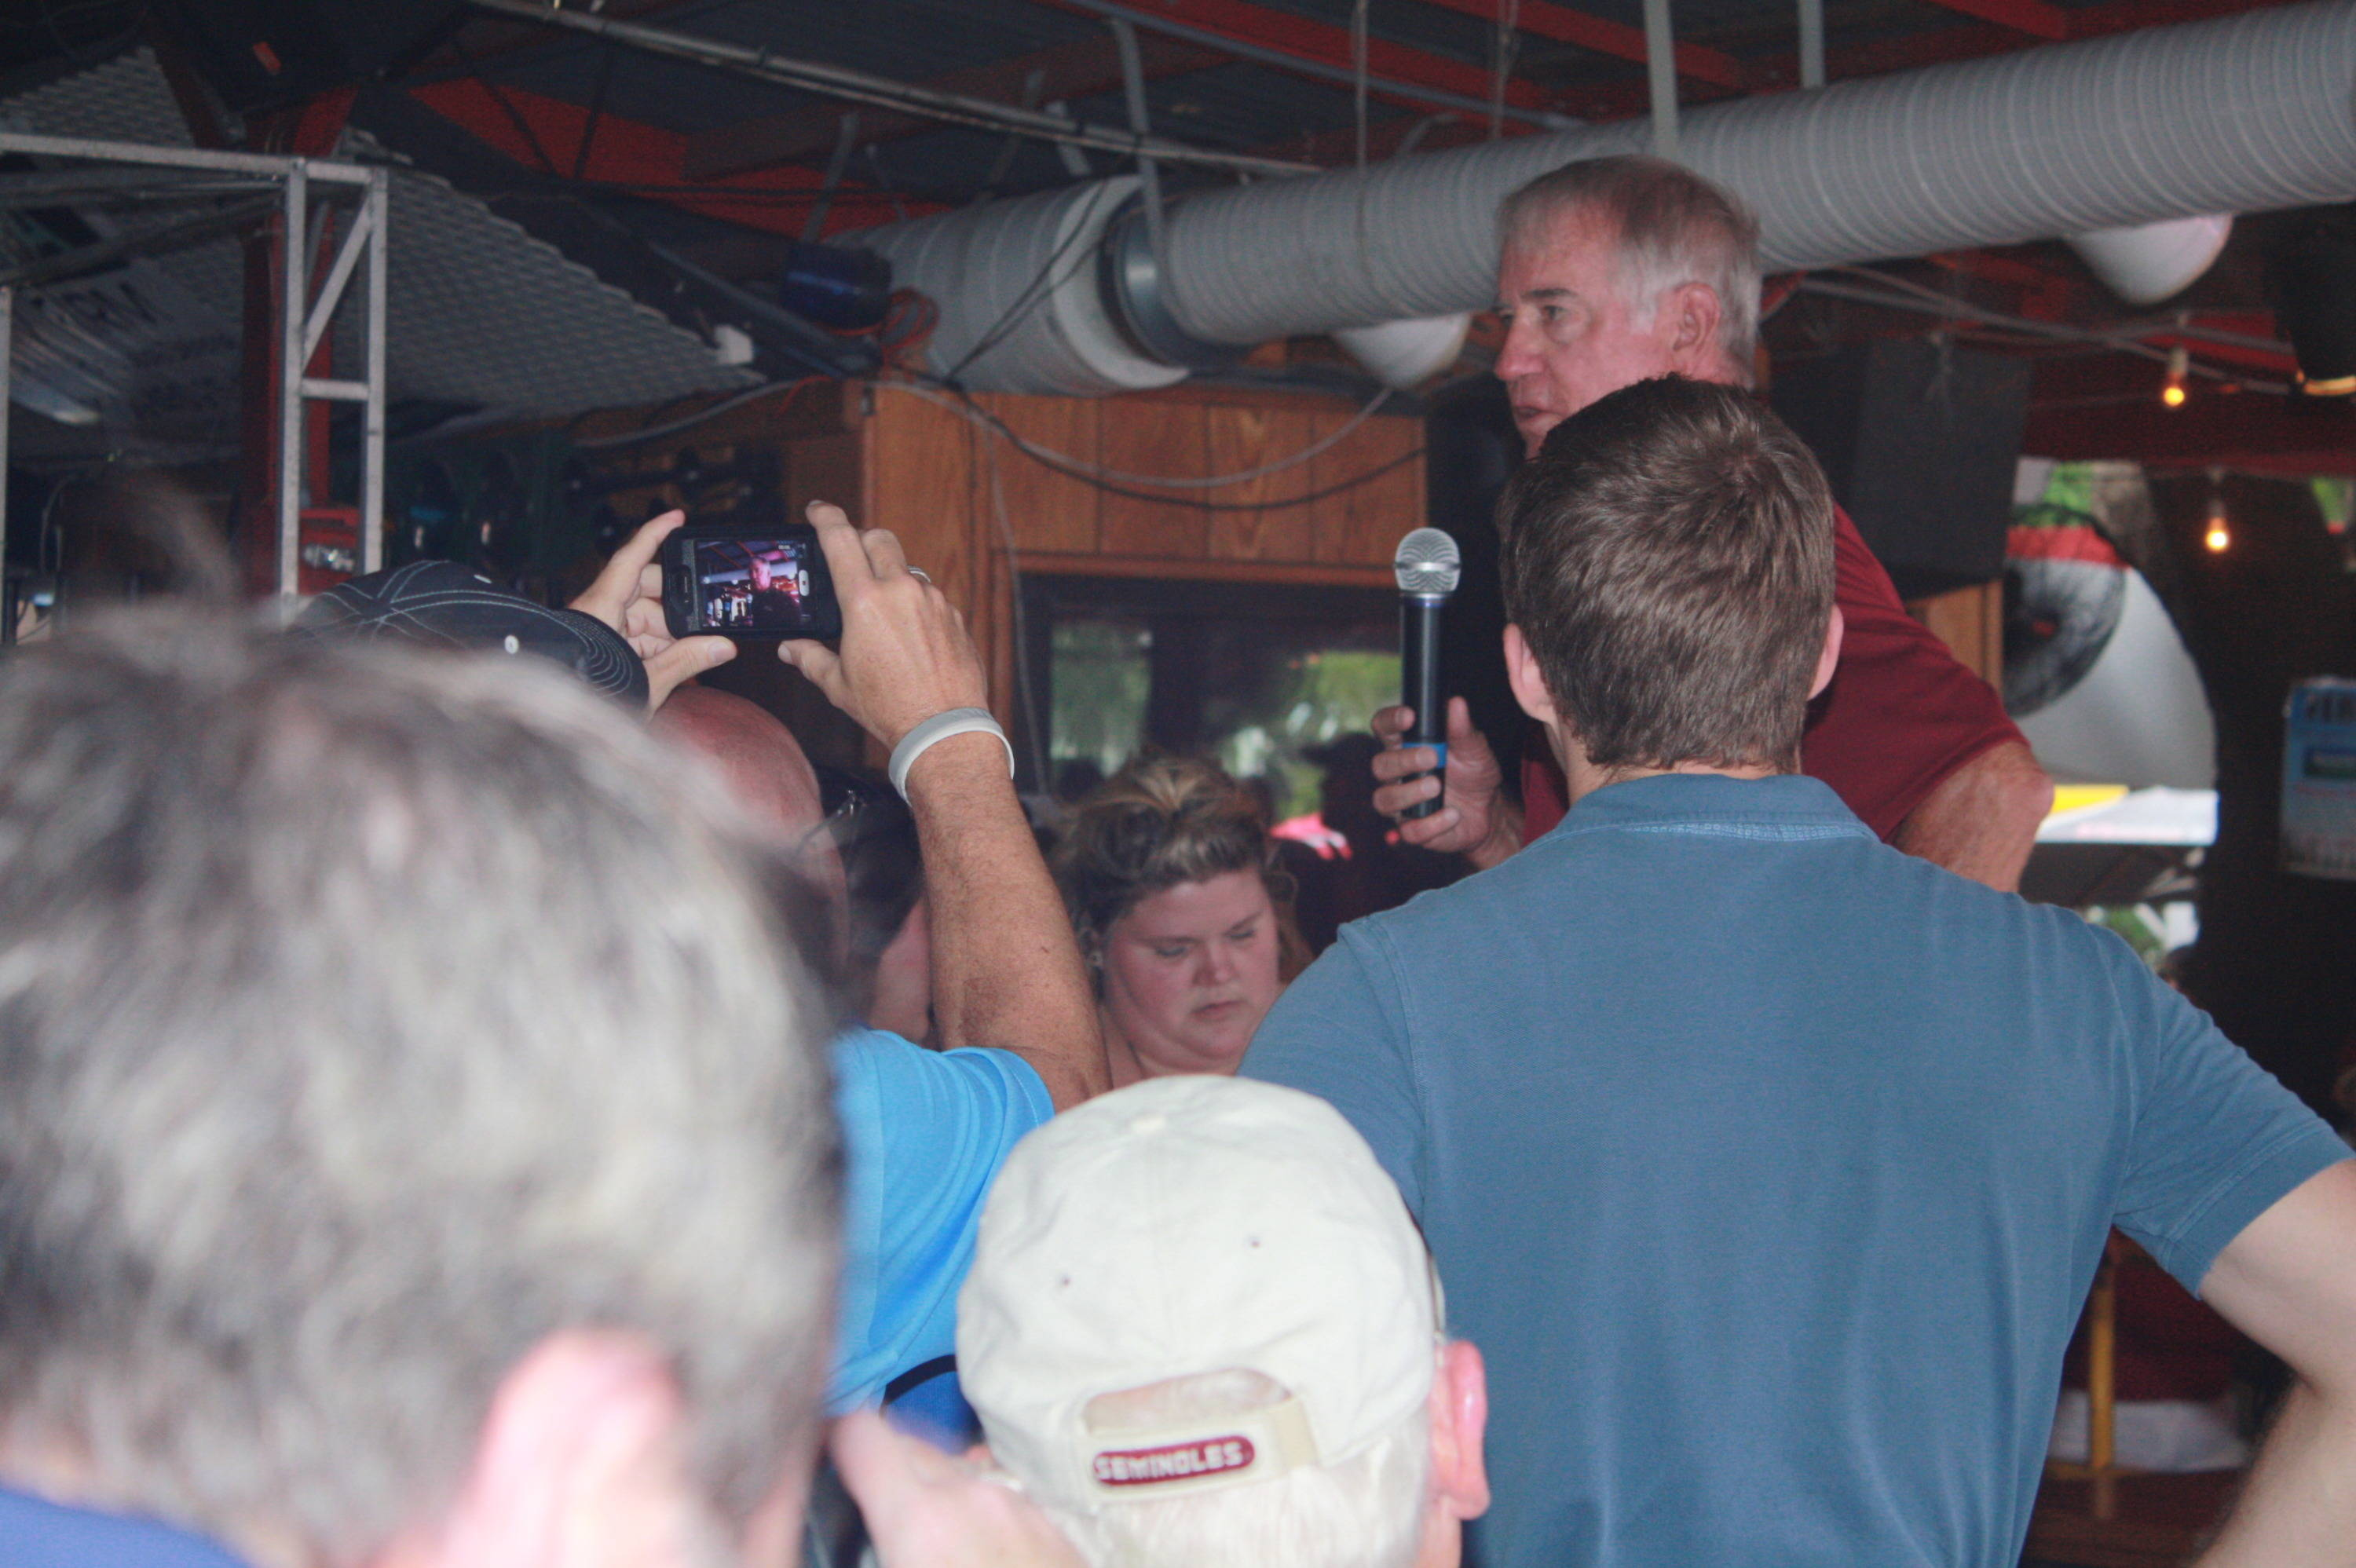 Head coach Mike Martin addresses the Seminole fans in attendance at Ferg's.